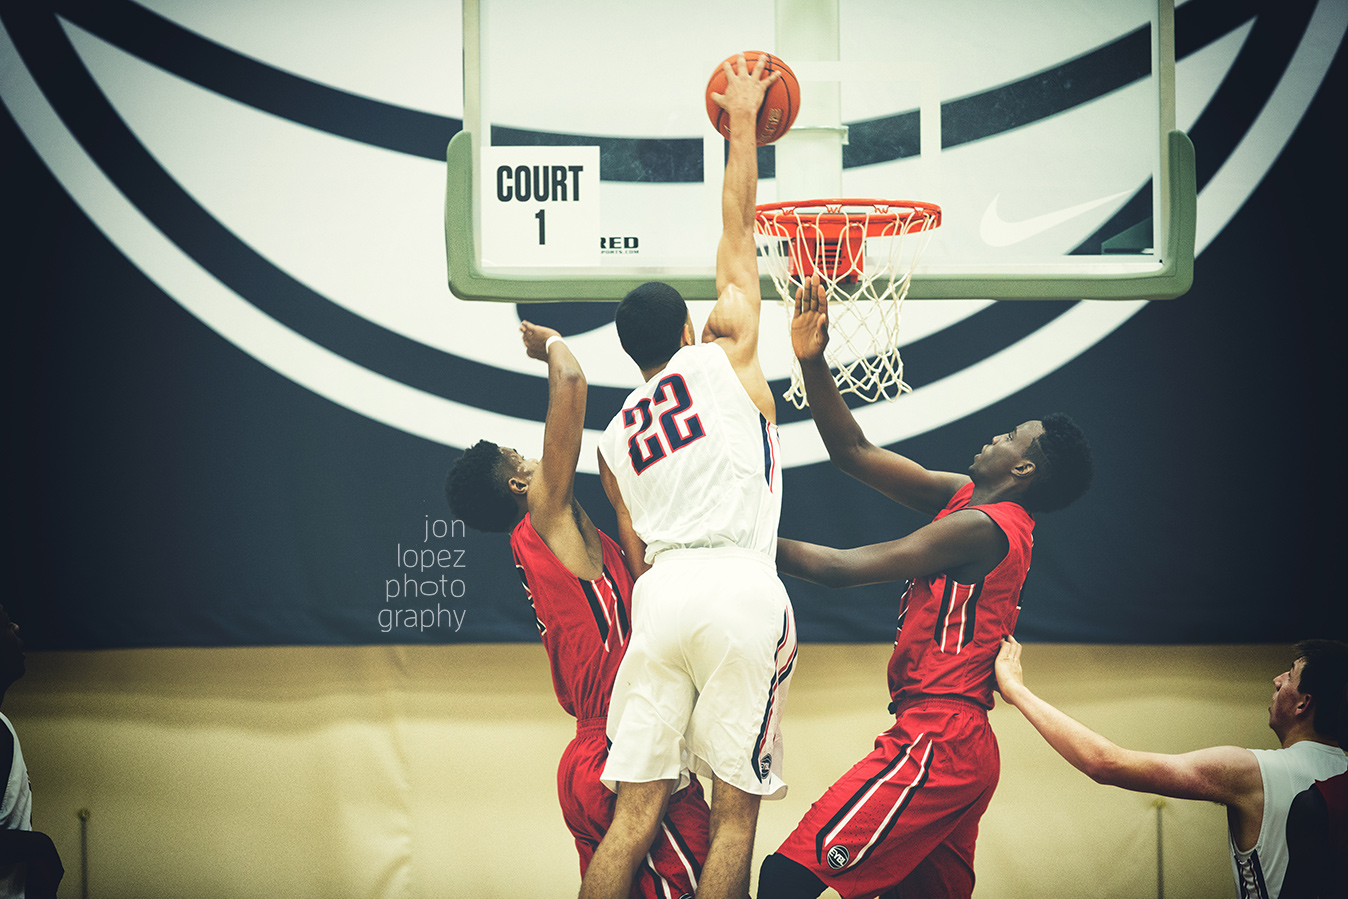 Jayson Tatum rises up for a dunk attempt over two defenders at session 4 of the EYBL in Minneapolis, MN.